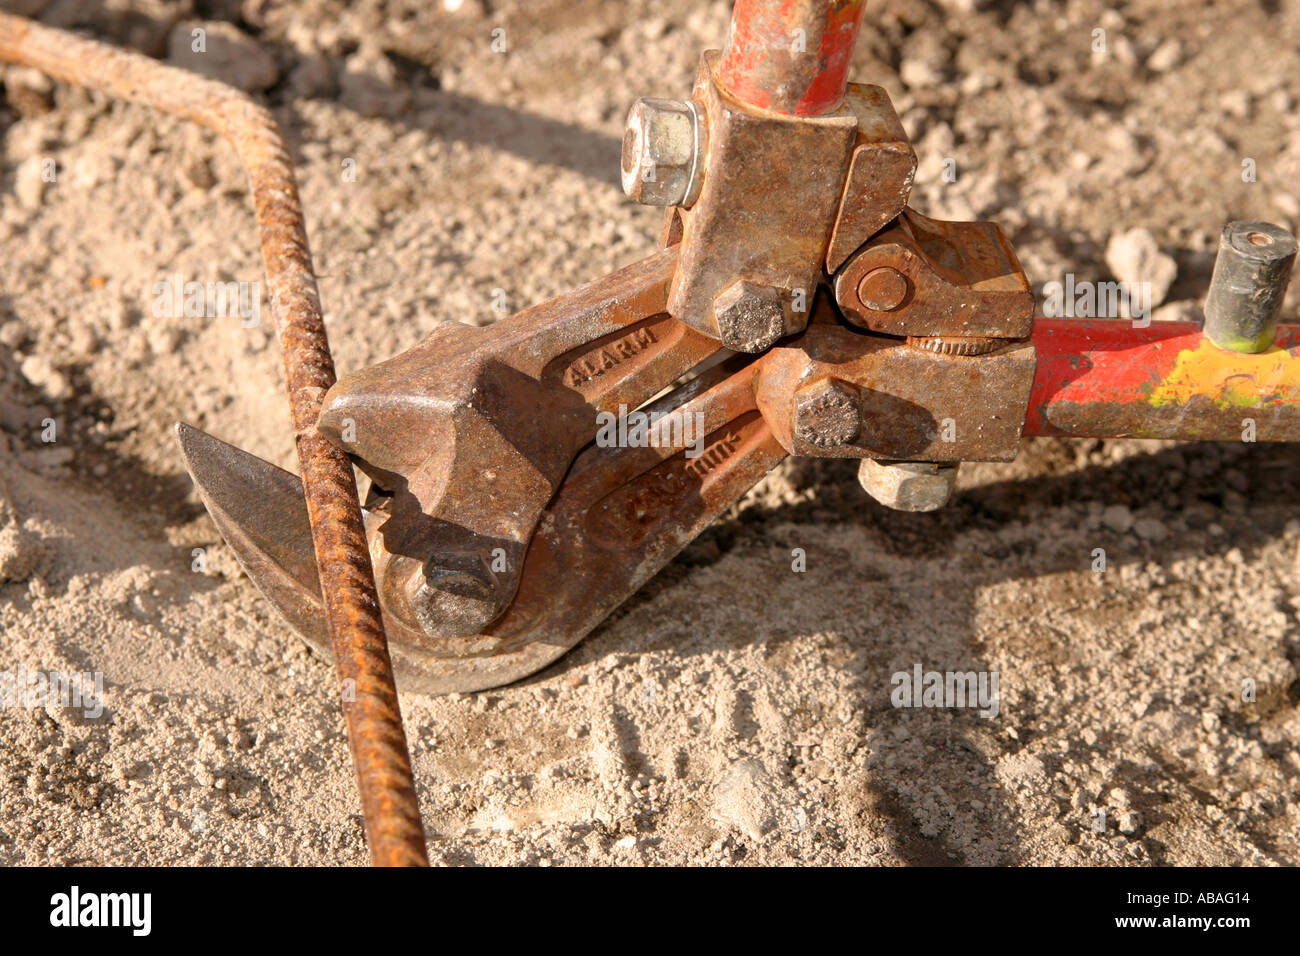 Using a cutting pliers on an iron reinforcement bar - Stock Image